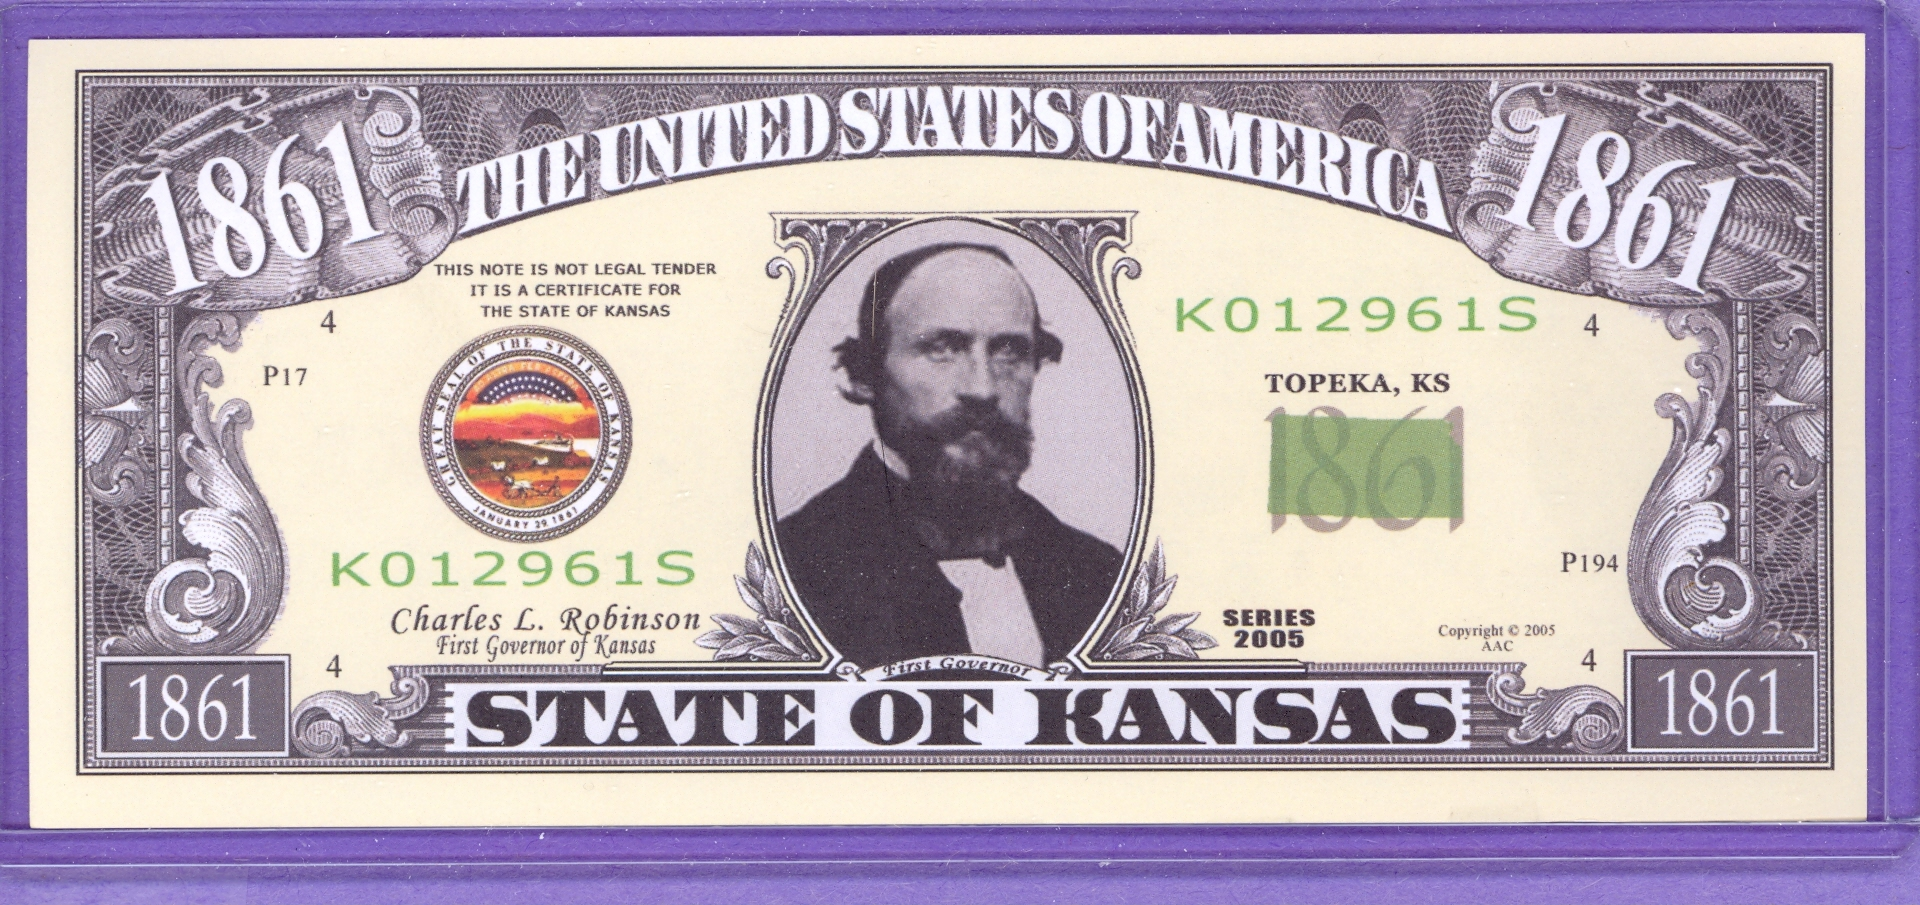 State of Kansas Novelty or Fantasy Note